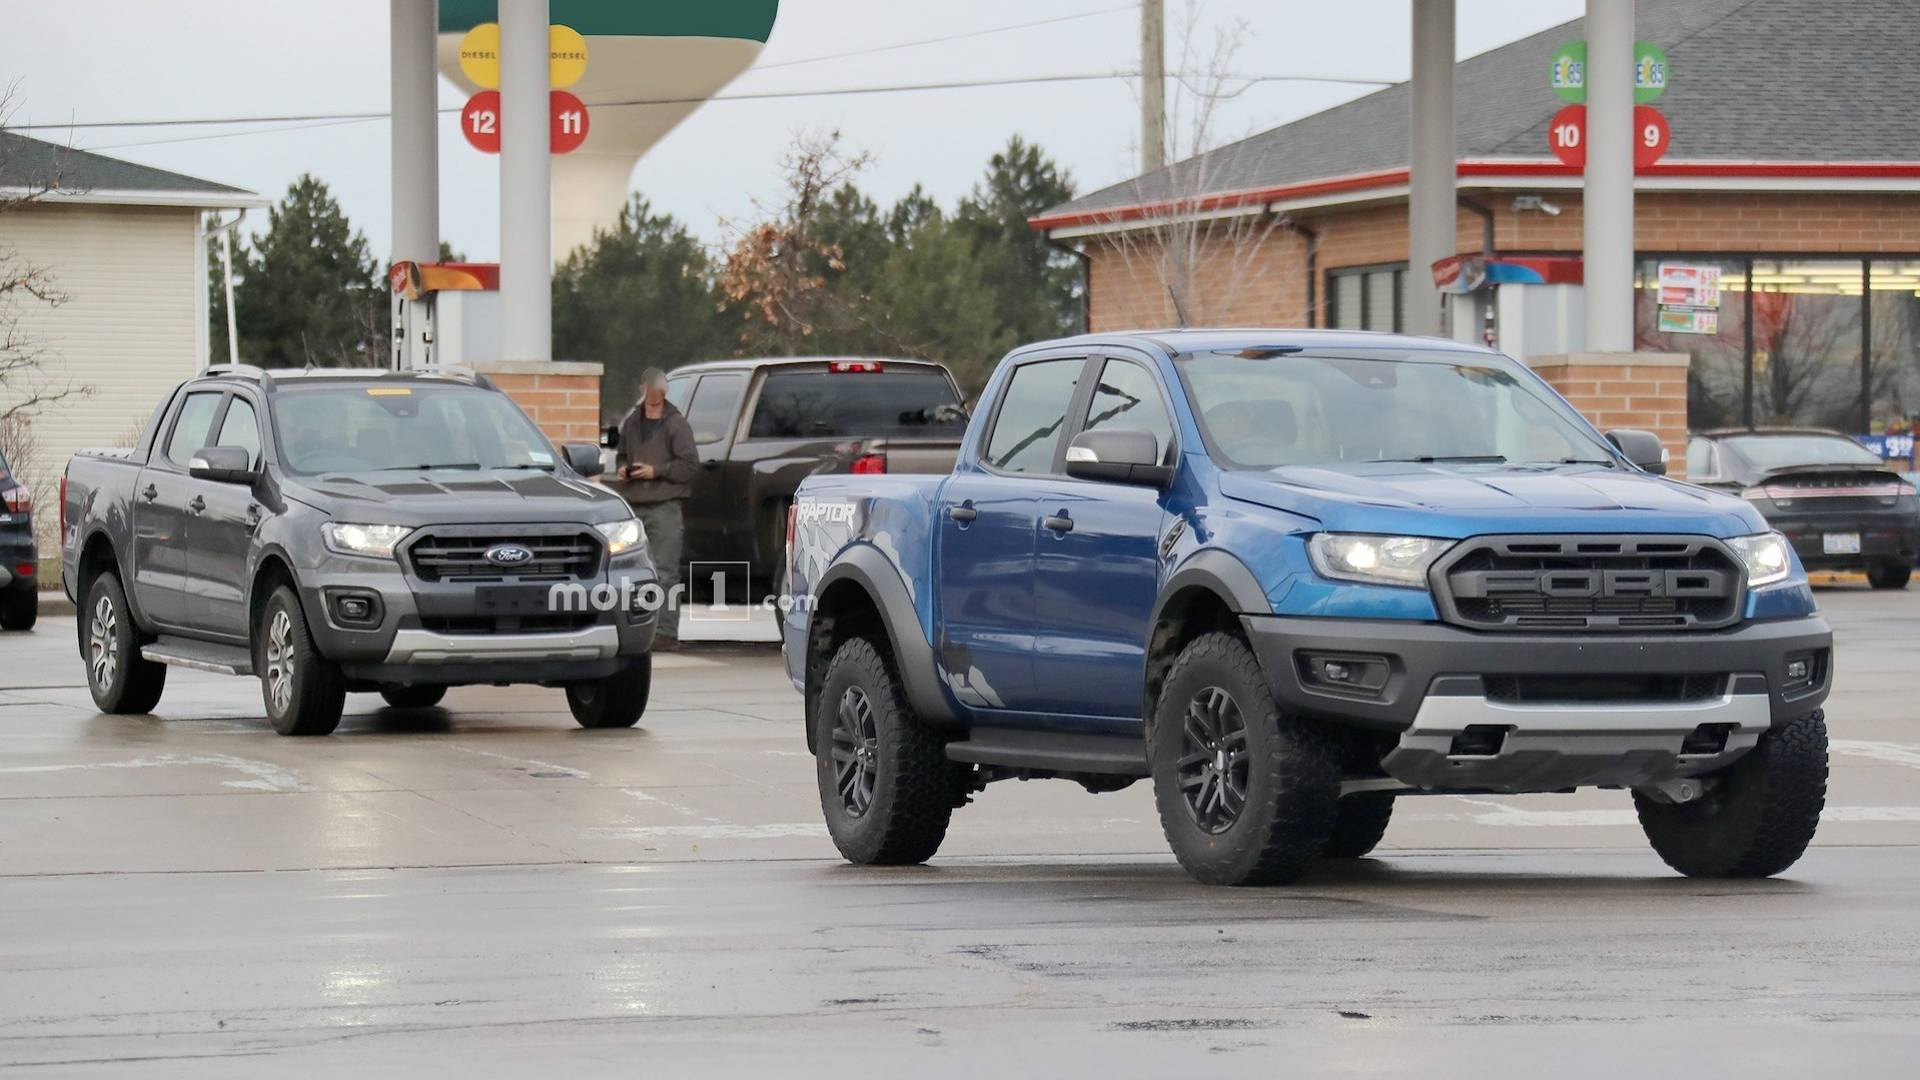 Ford Ranger Wildtrak Caught Testing In U S With Ranger Raptor